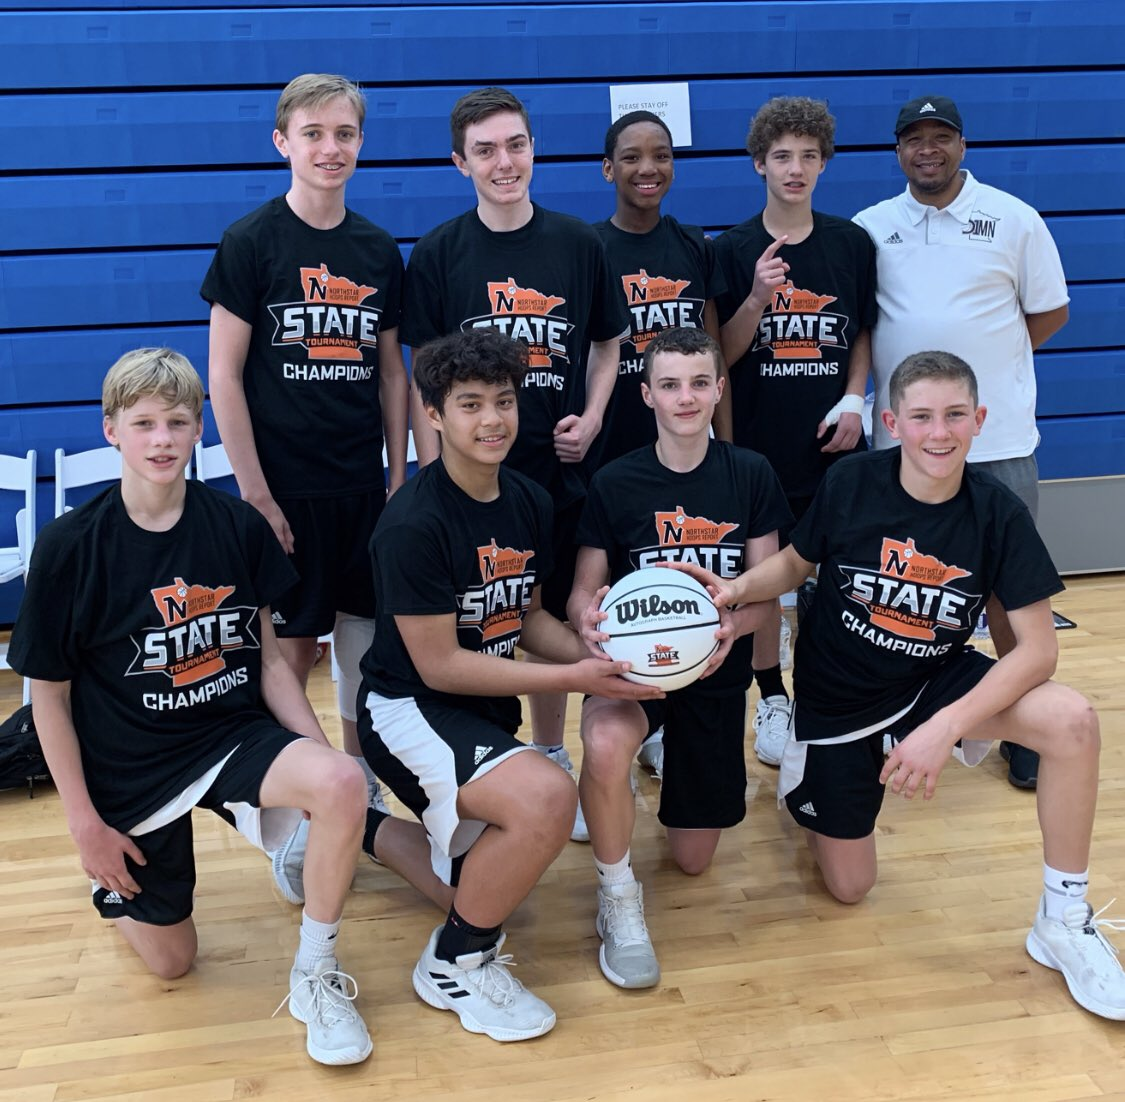 Last wk, they refused to take a bronze pic for the parents. I think they made their point. You're looking at the 13U @NorthstarHoops Div 1 STATE CHAMPS. The @adidasD1MN future is bright. Let's stay hungry. #hungerformore #d1defense #StateChampions https://t.co/7vGthqqDGx